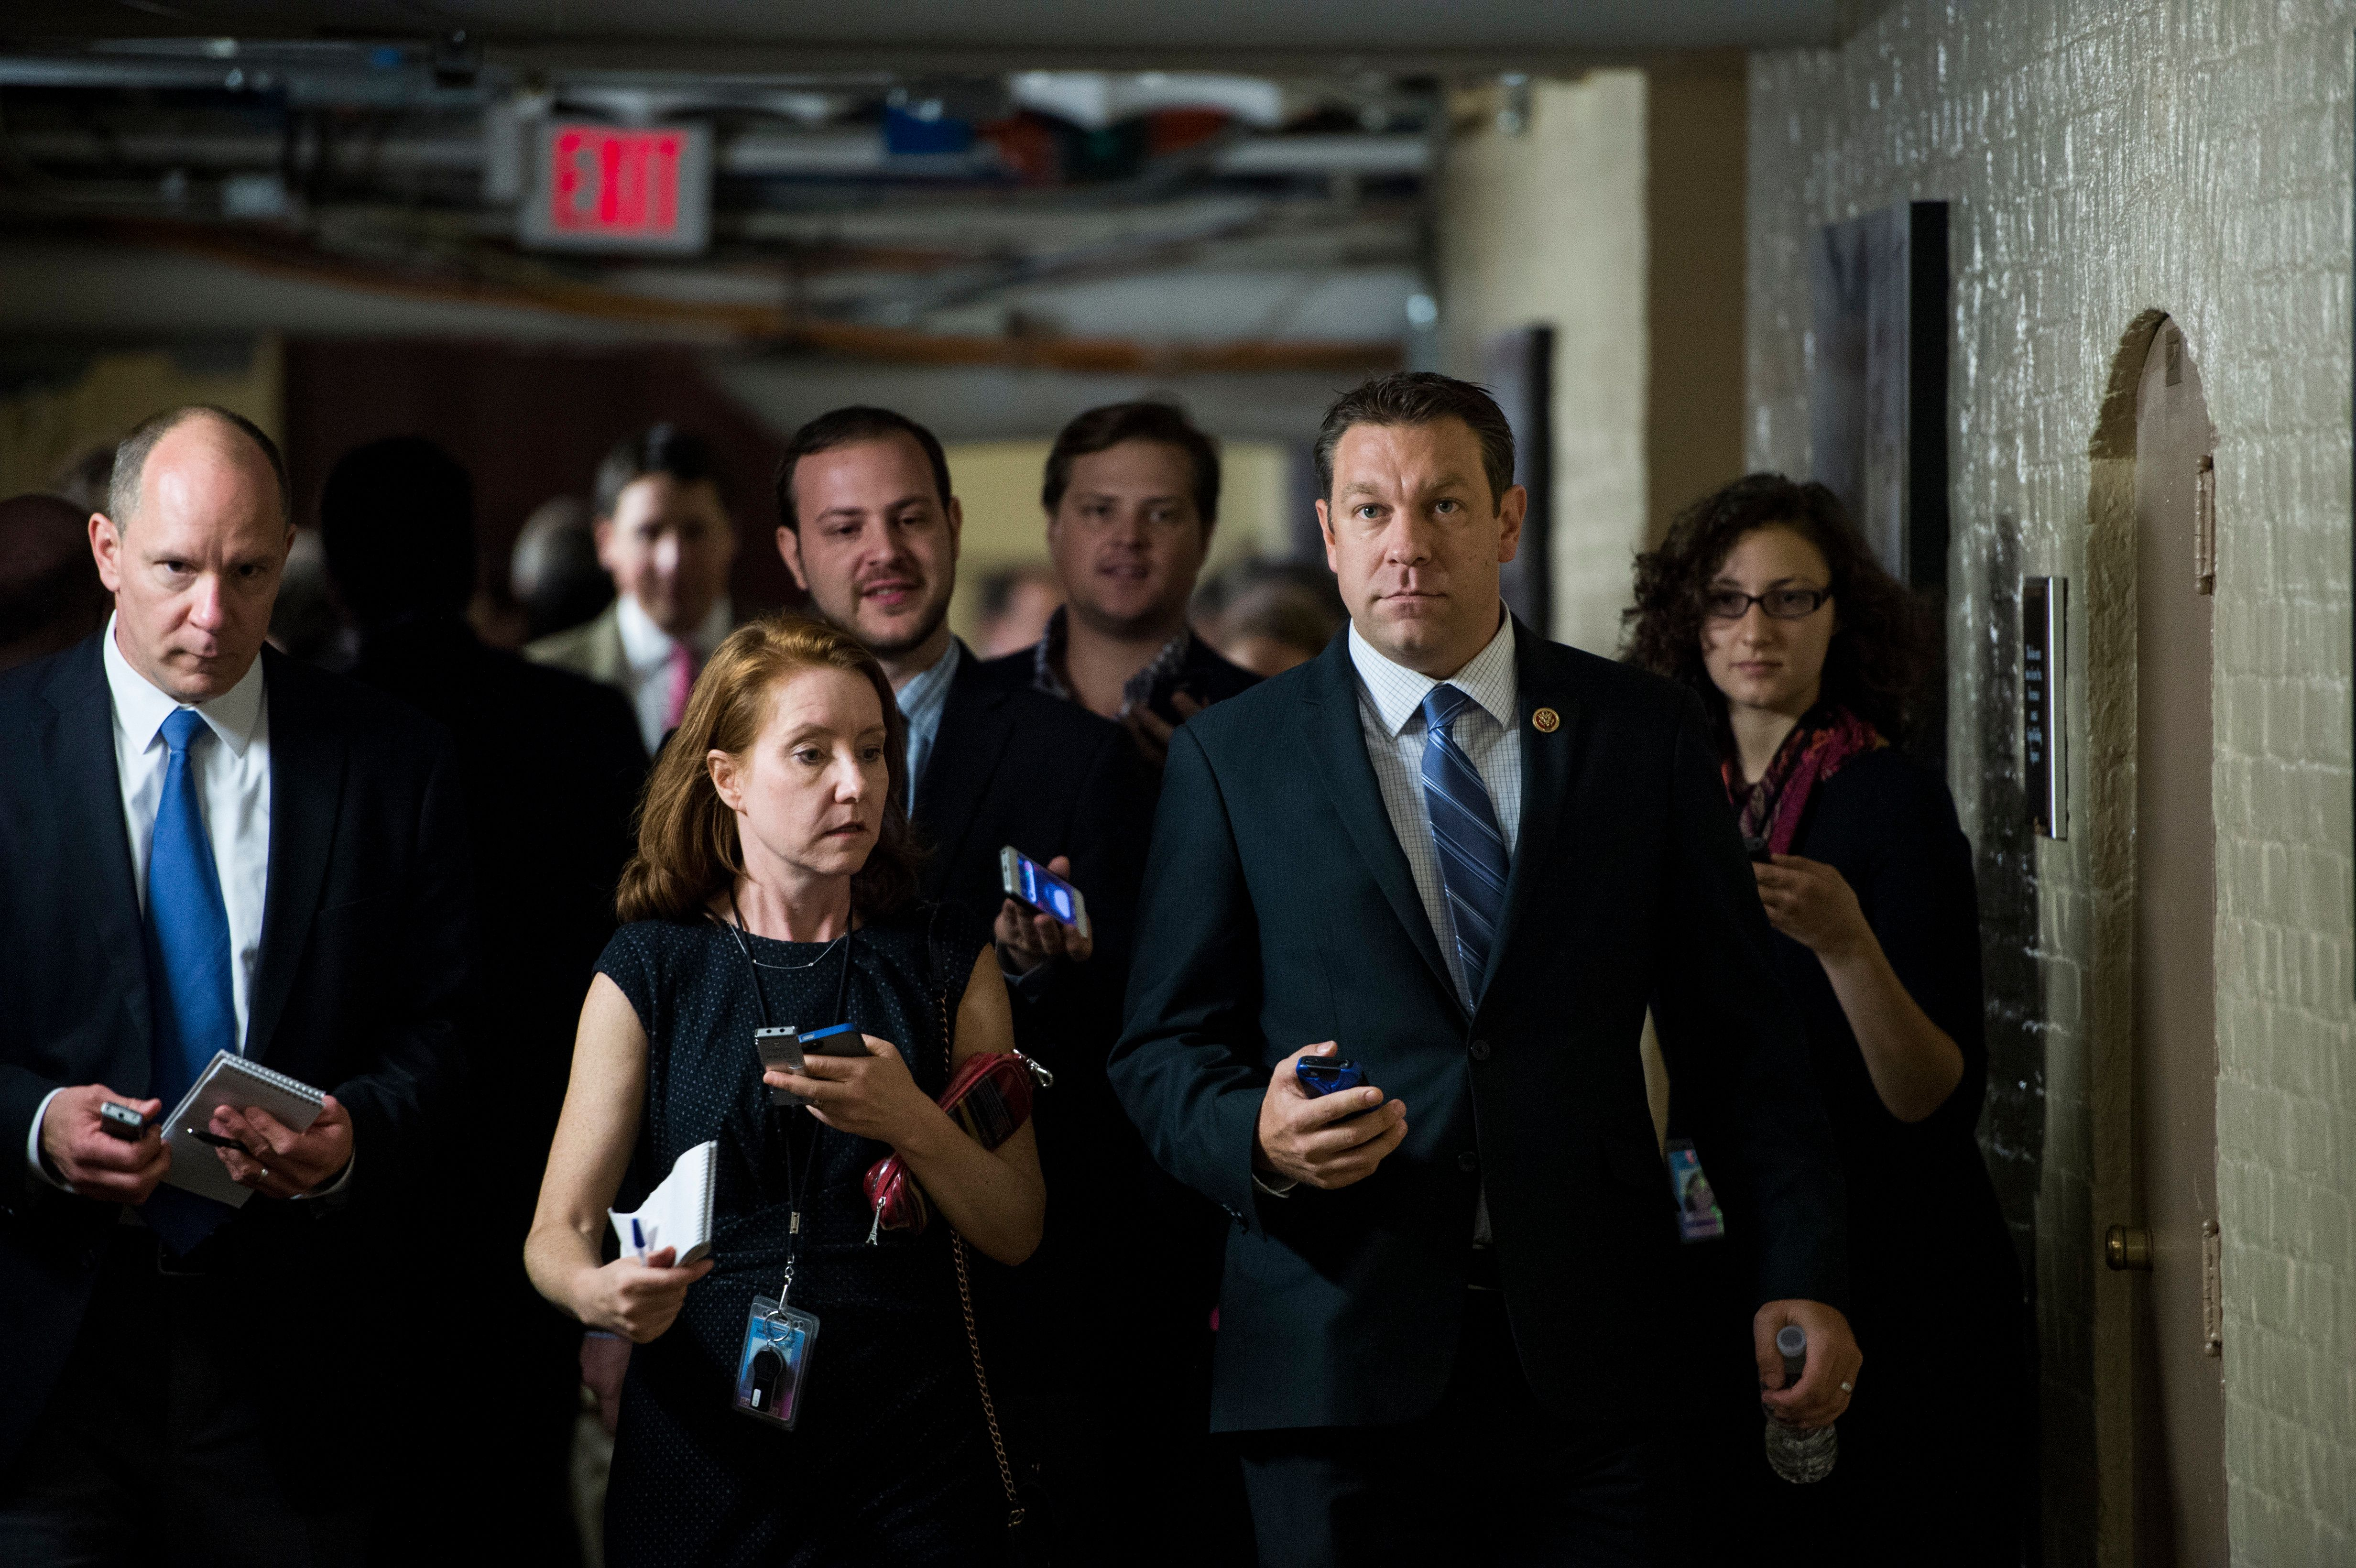 Trey Radel thought he might be able to let his arrest for a cocaine purchase blow over, but he soon realized his congressiona